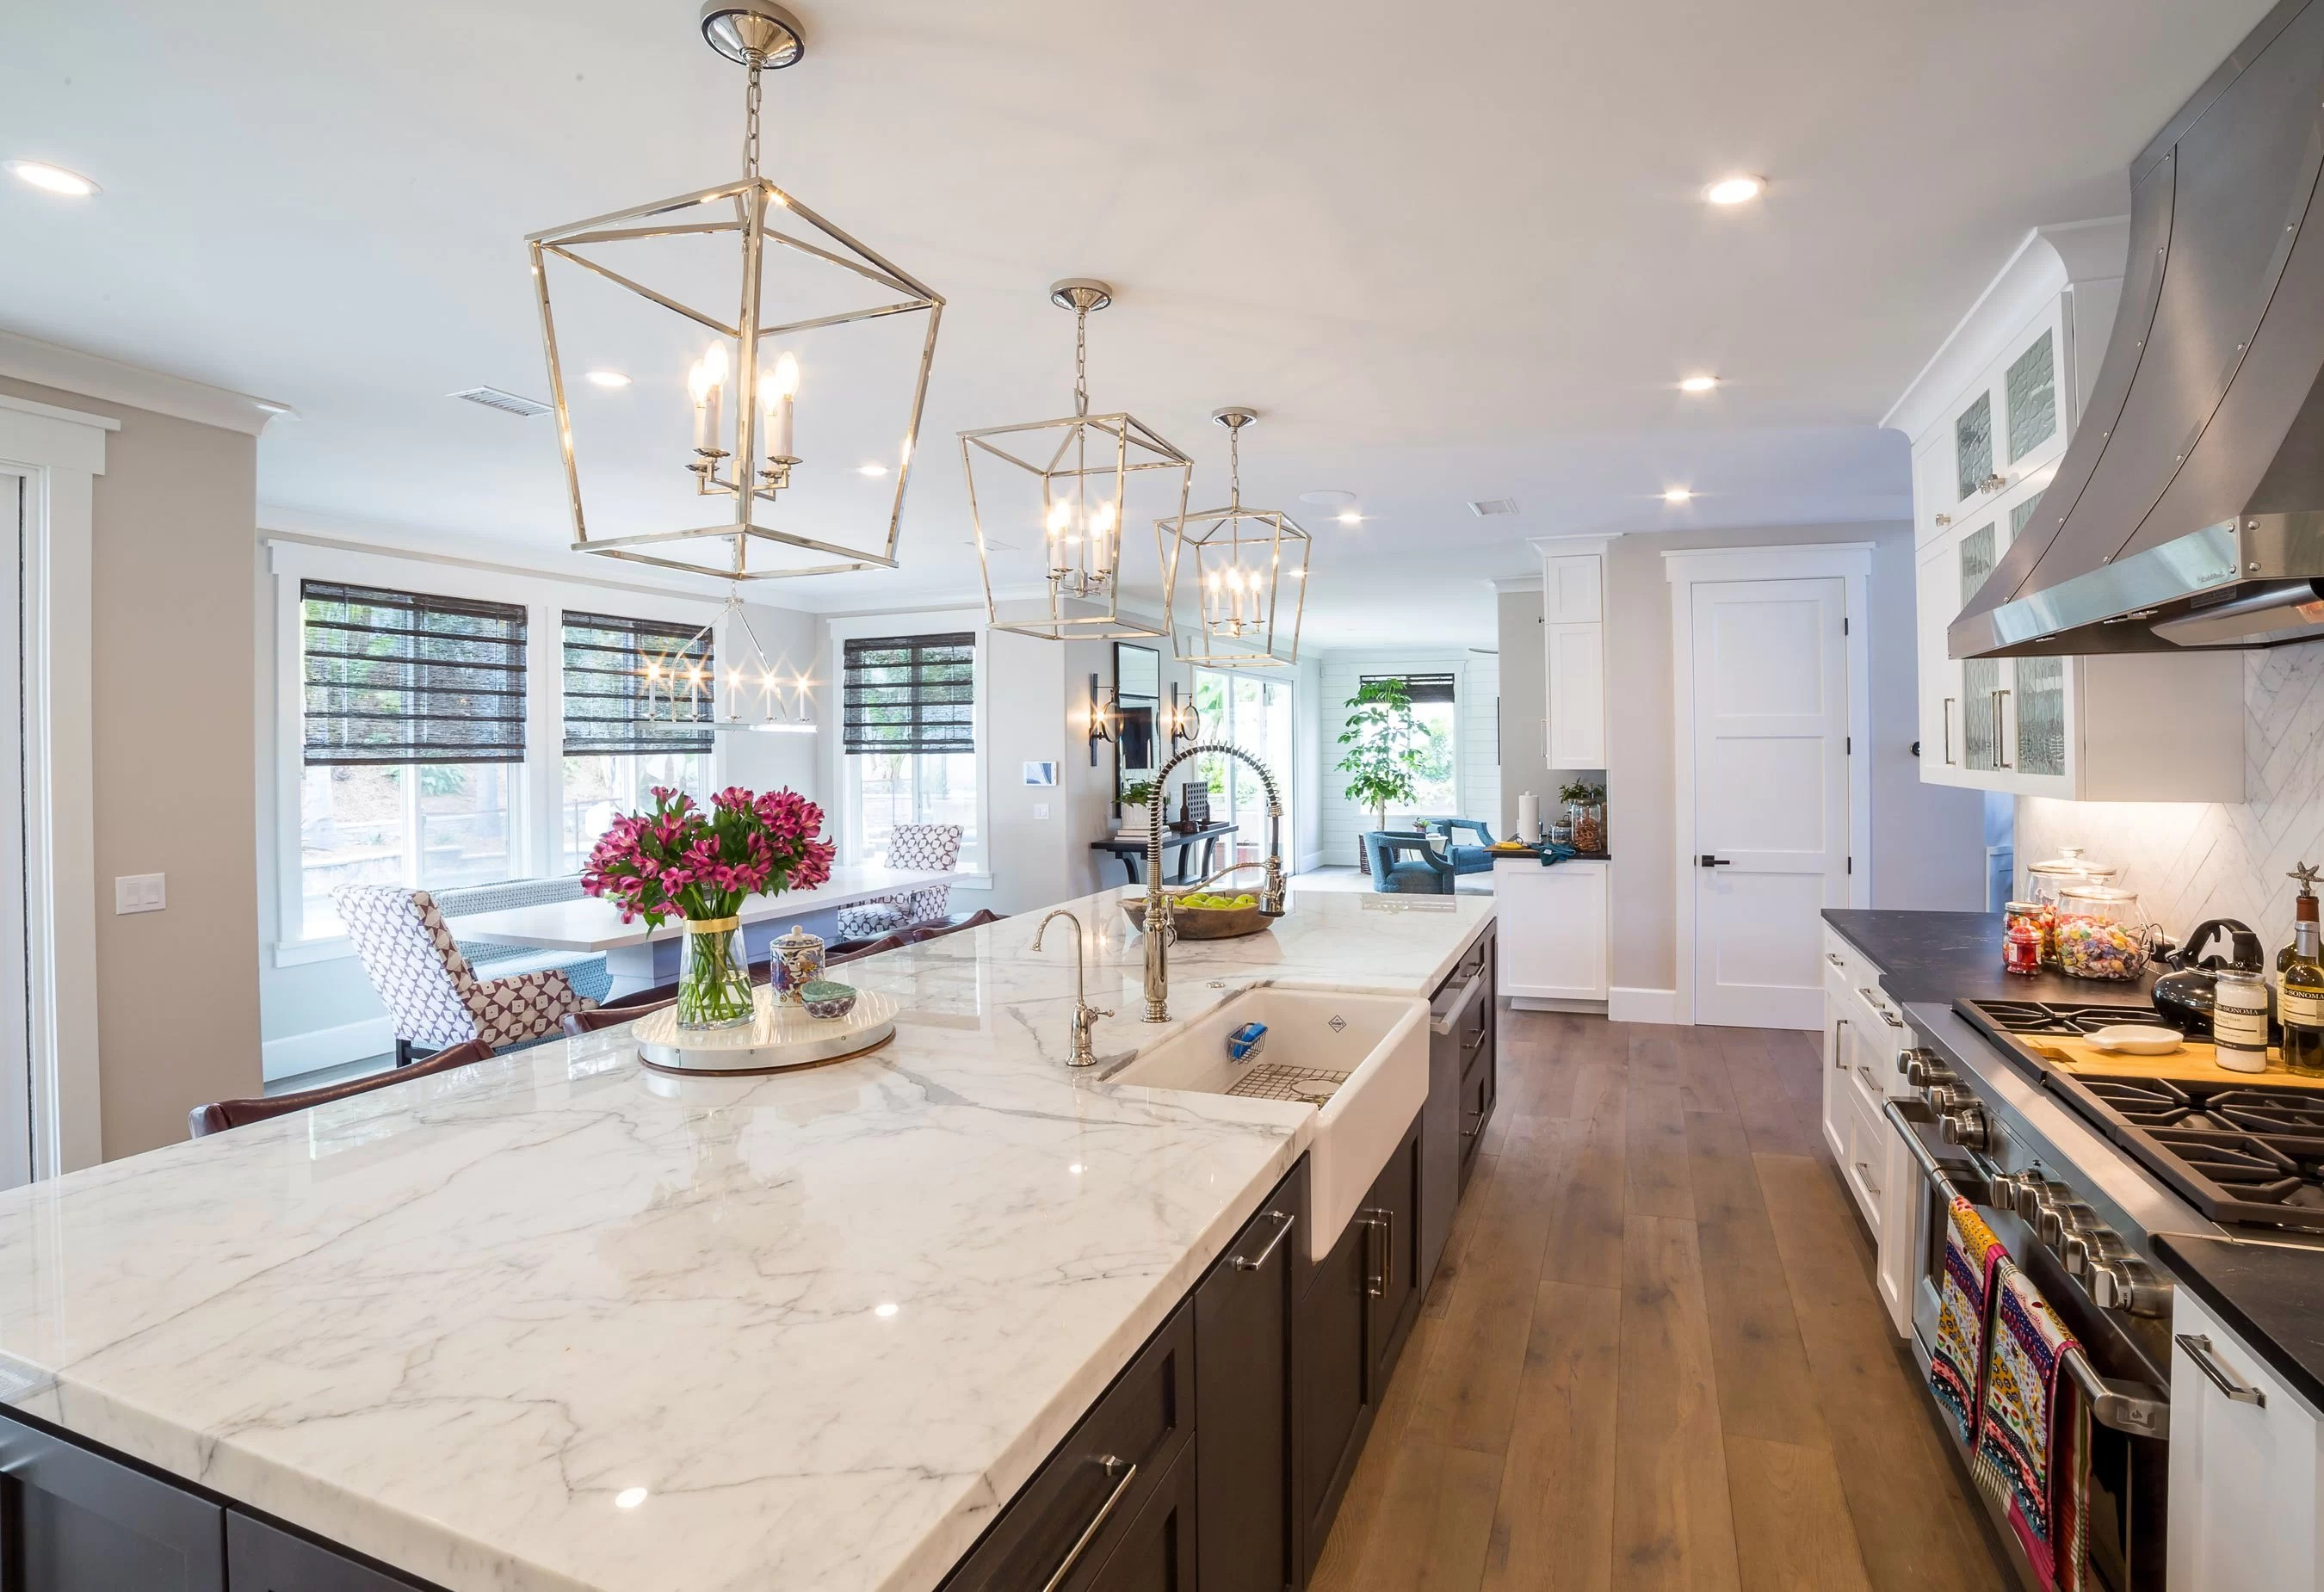 Hard To Design Kitchen Layout Kitchen Remodeling San Diego Trusted Contractors Near Me Lars